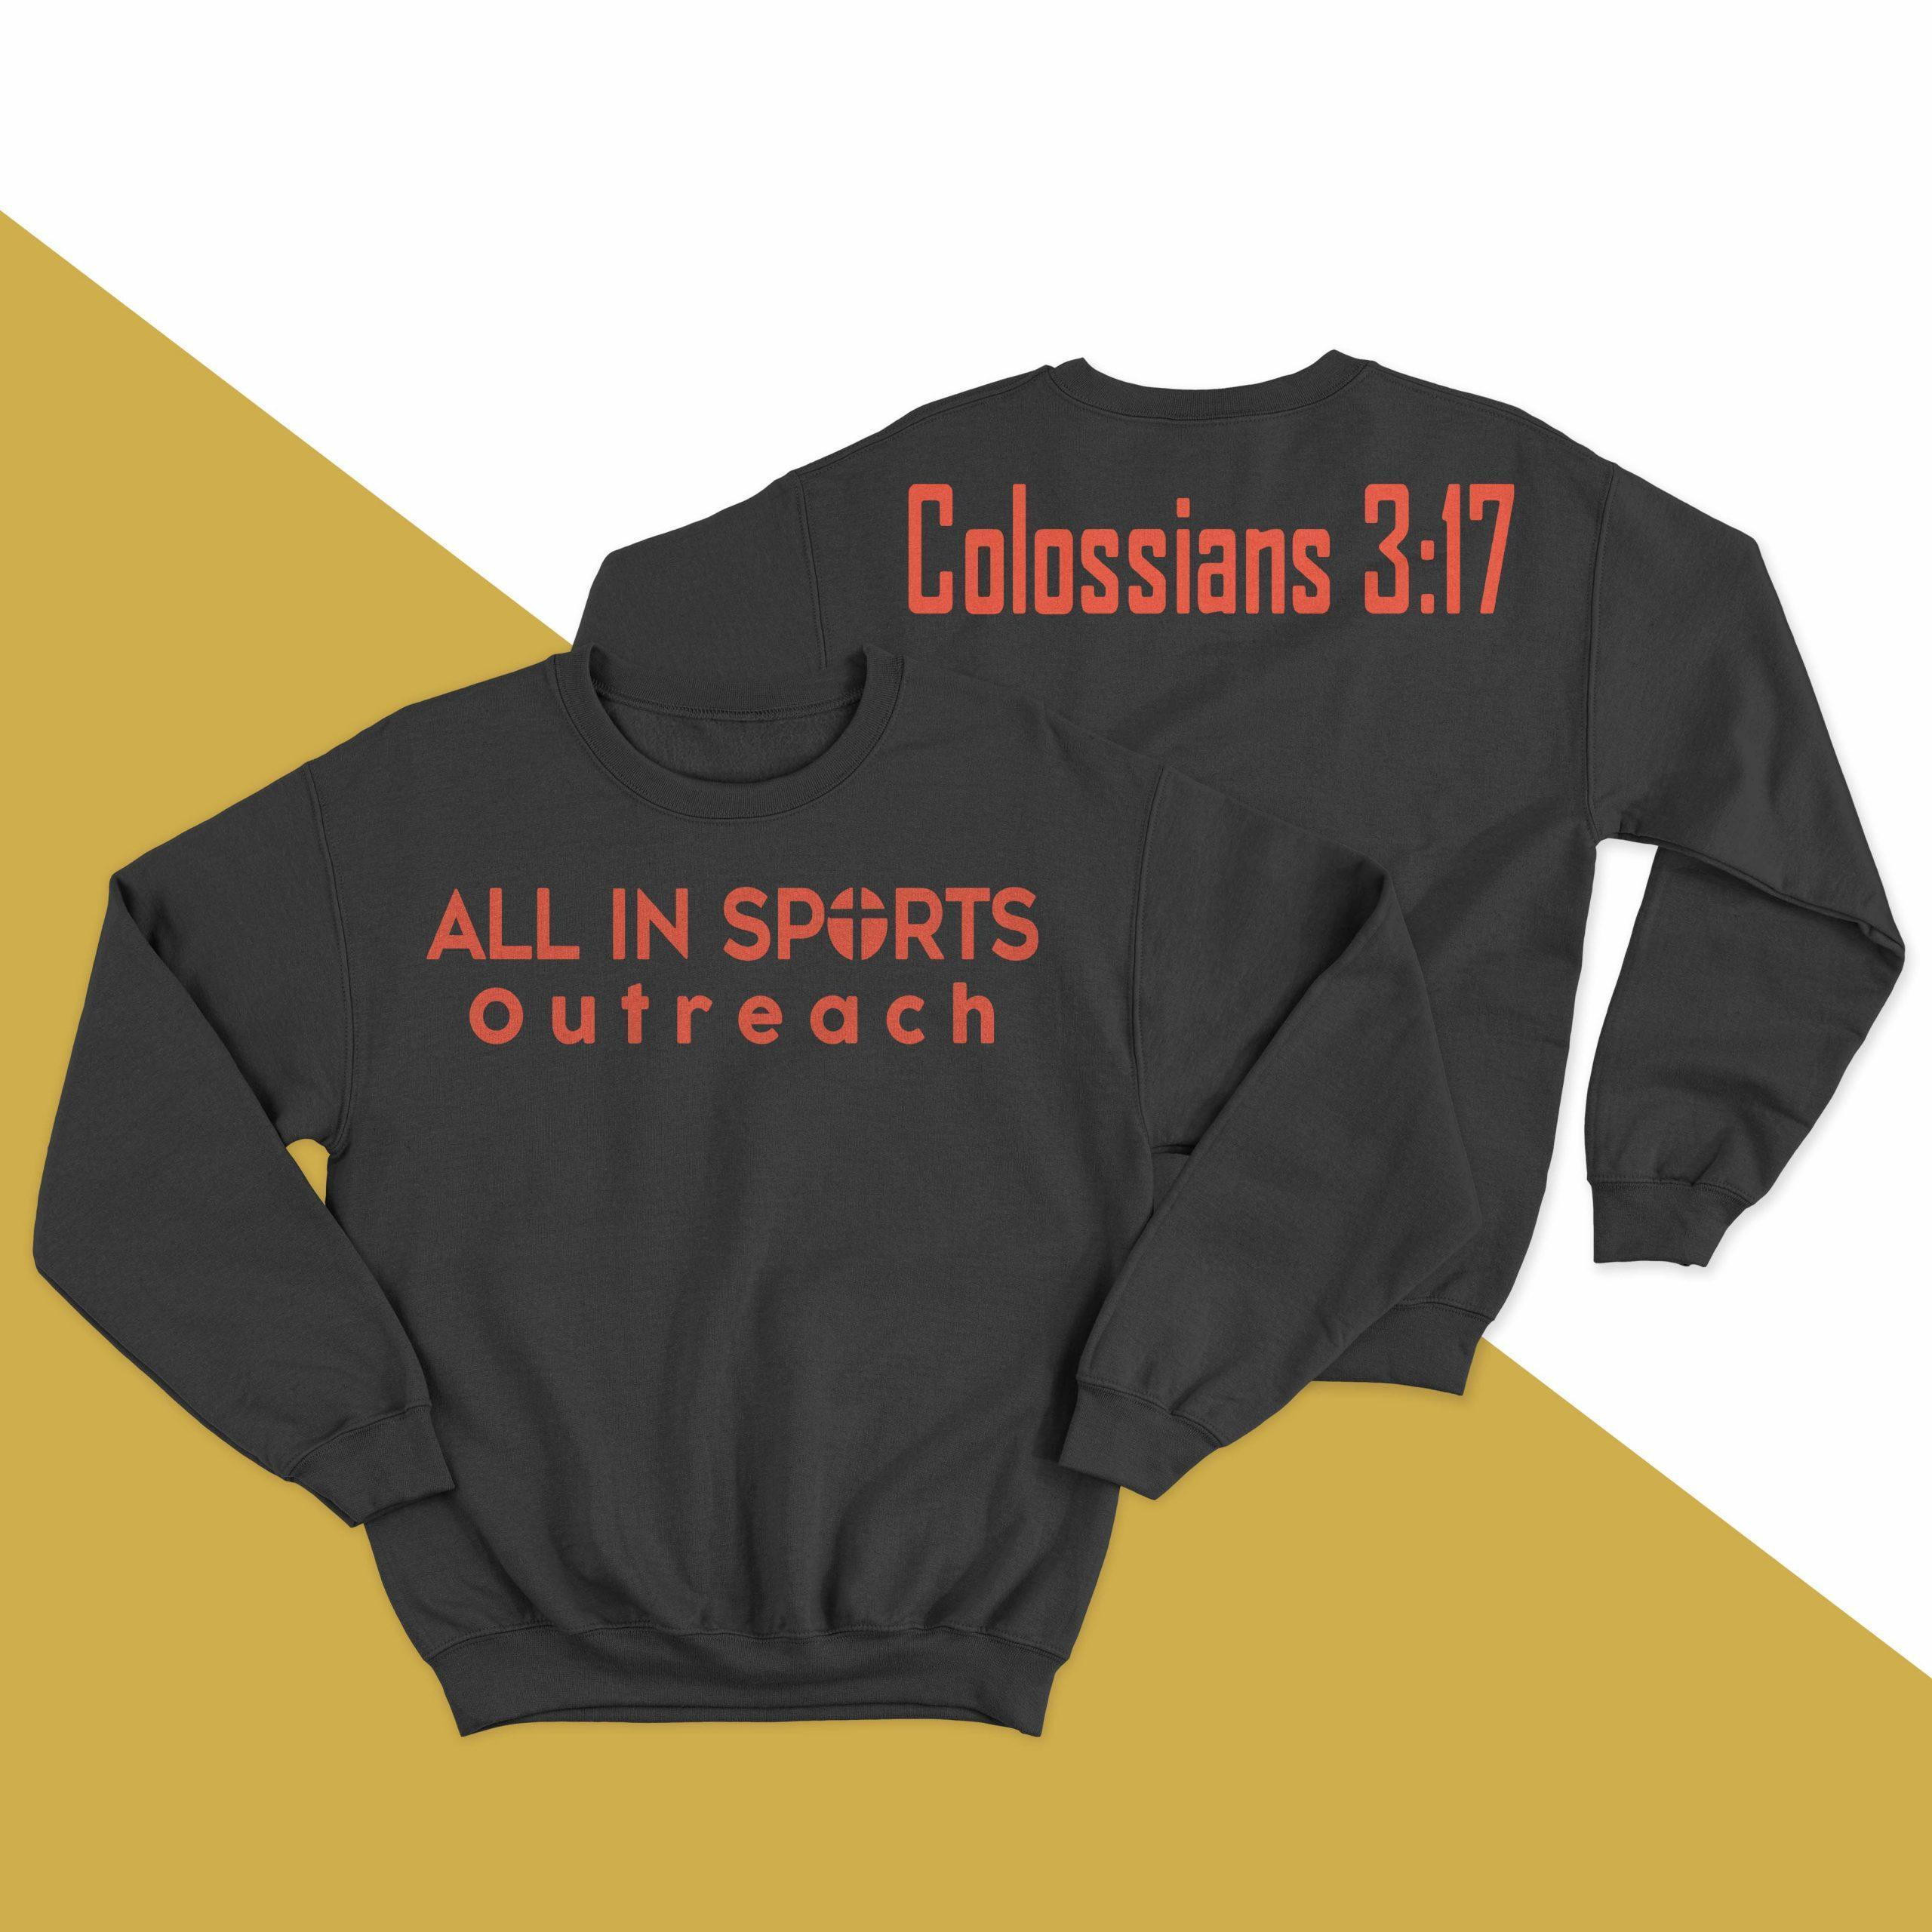 All In Sports Outreach Colossians 3 17 Sweater